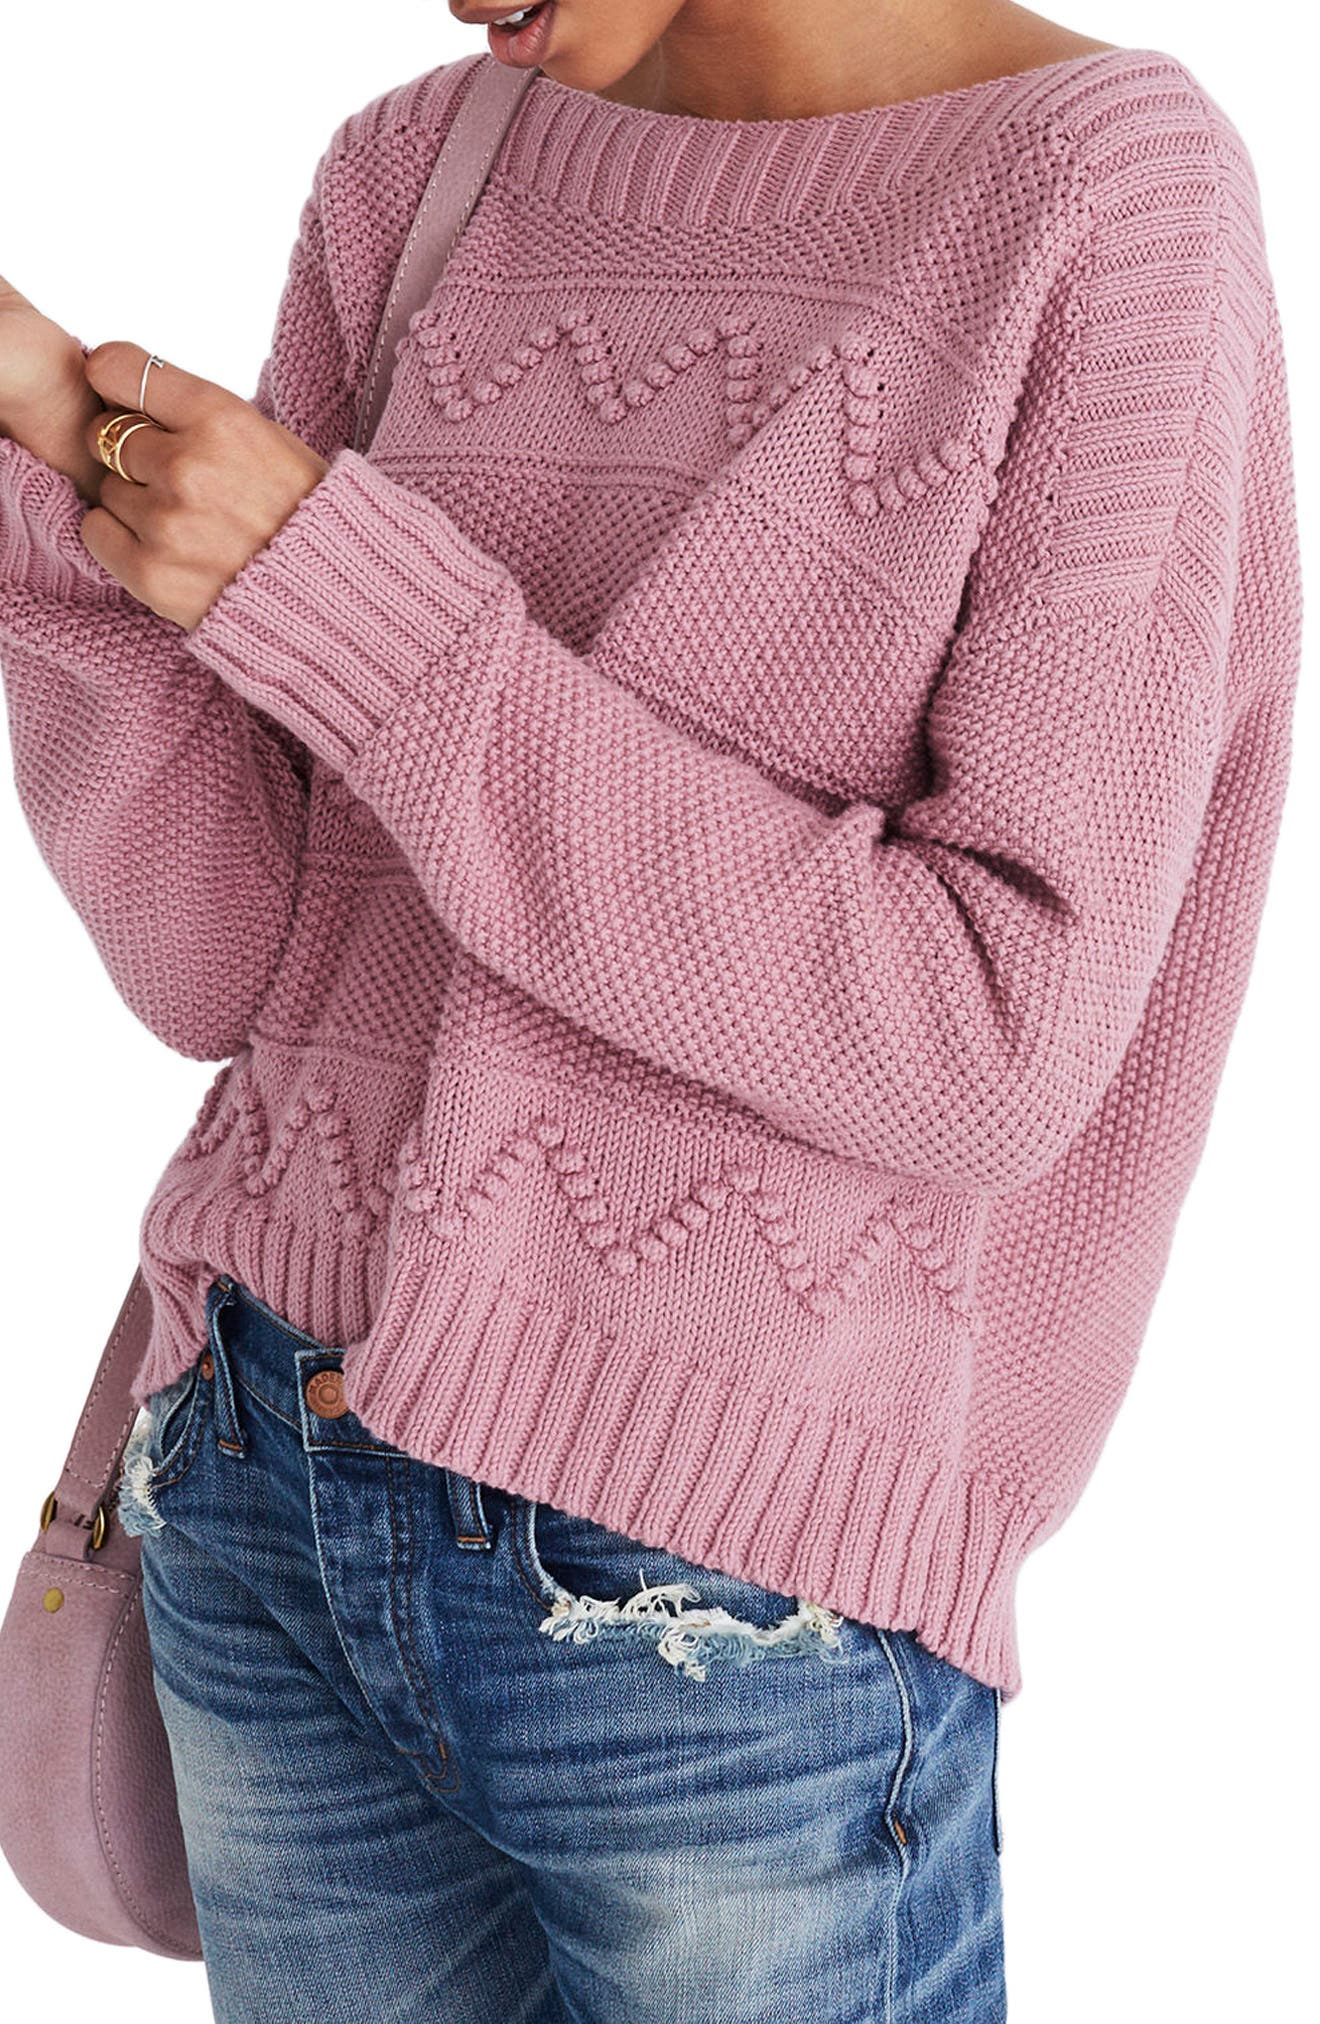 Zigzag Stitch Pullover Sweater,                             Main thumbnail 1, color,                             650